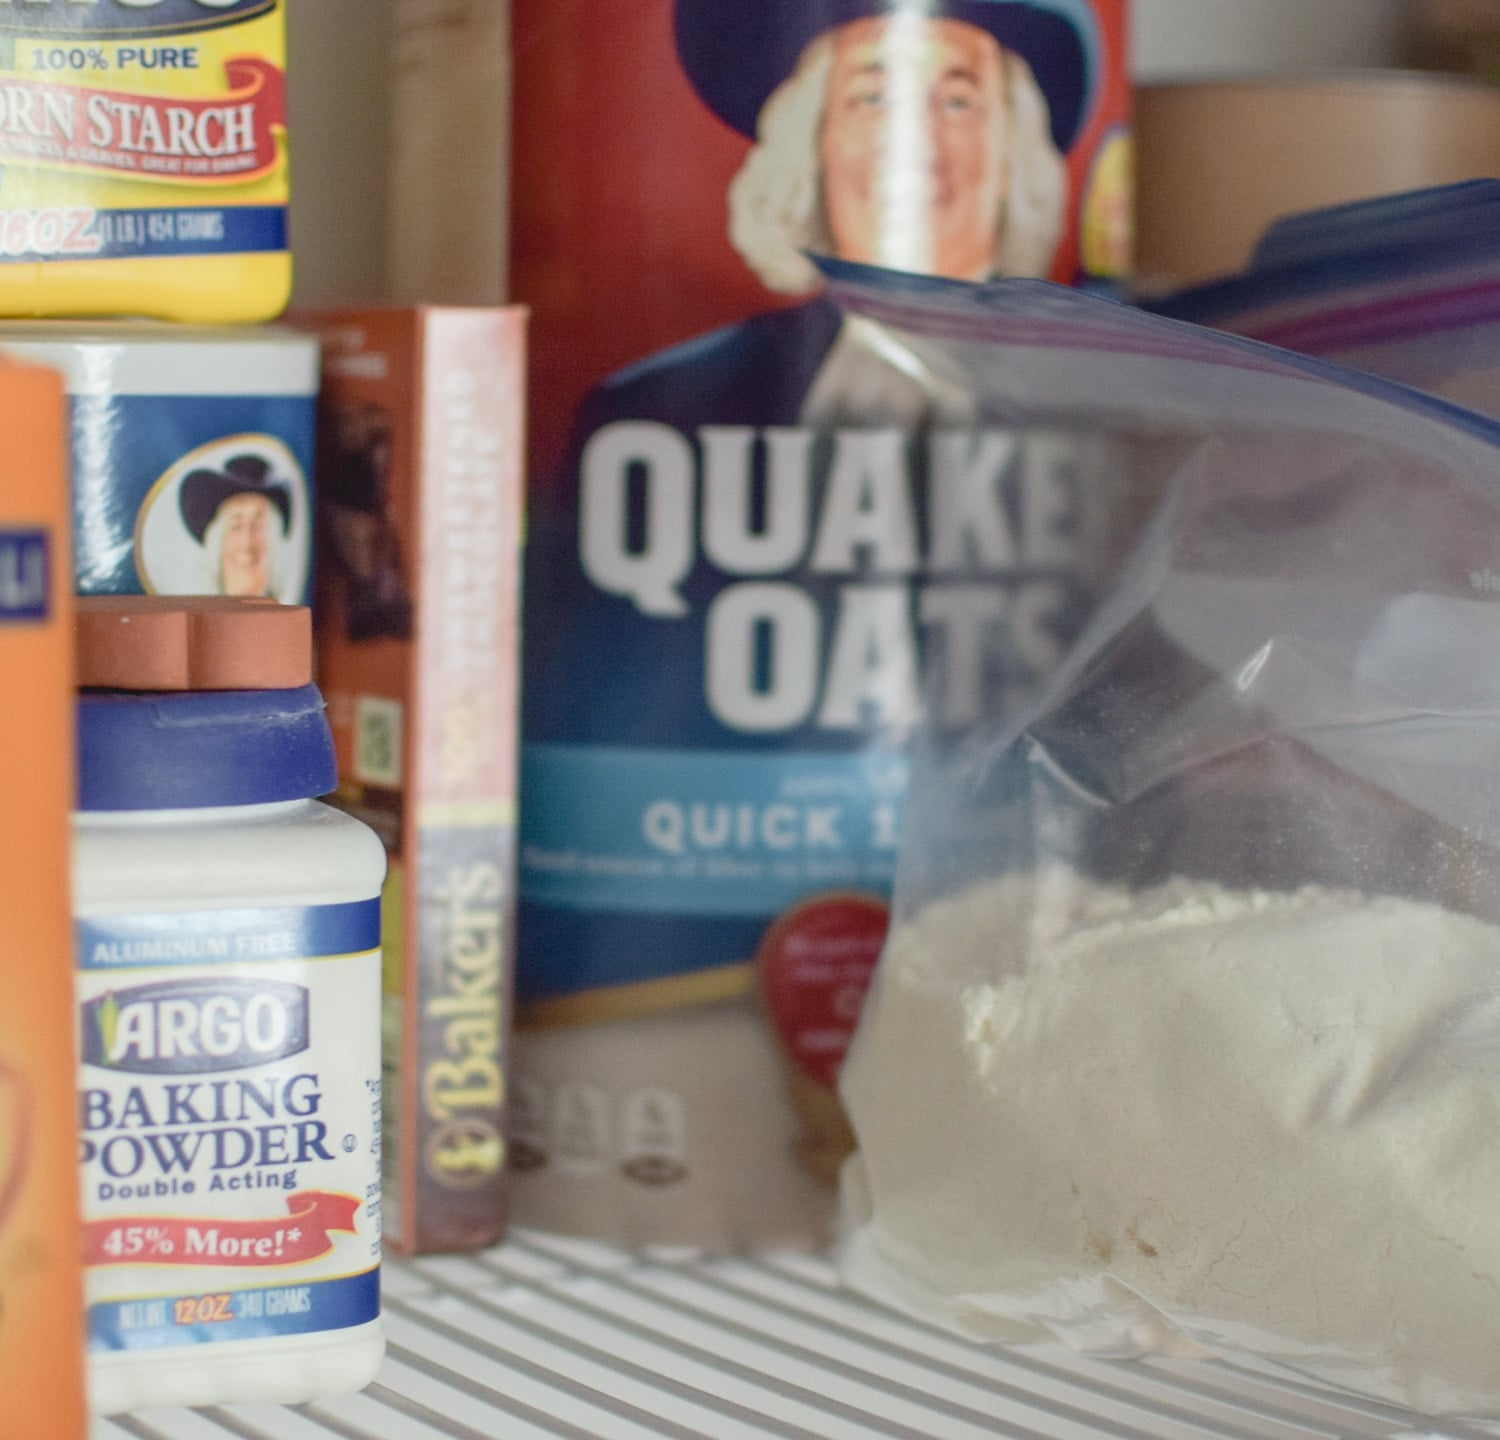 Baking powder, flour, and oatmeal are easy pantry staples you should always have on hand